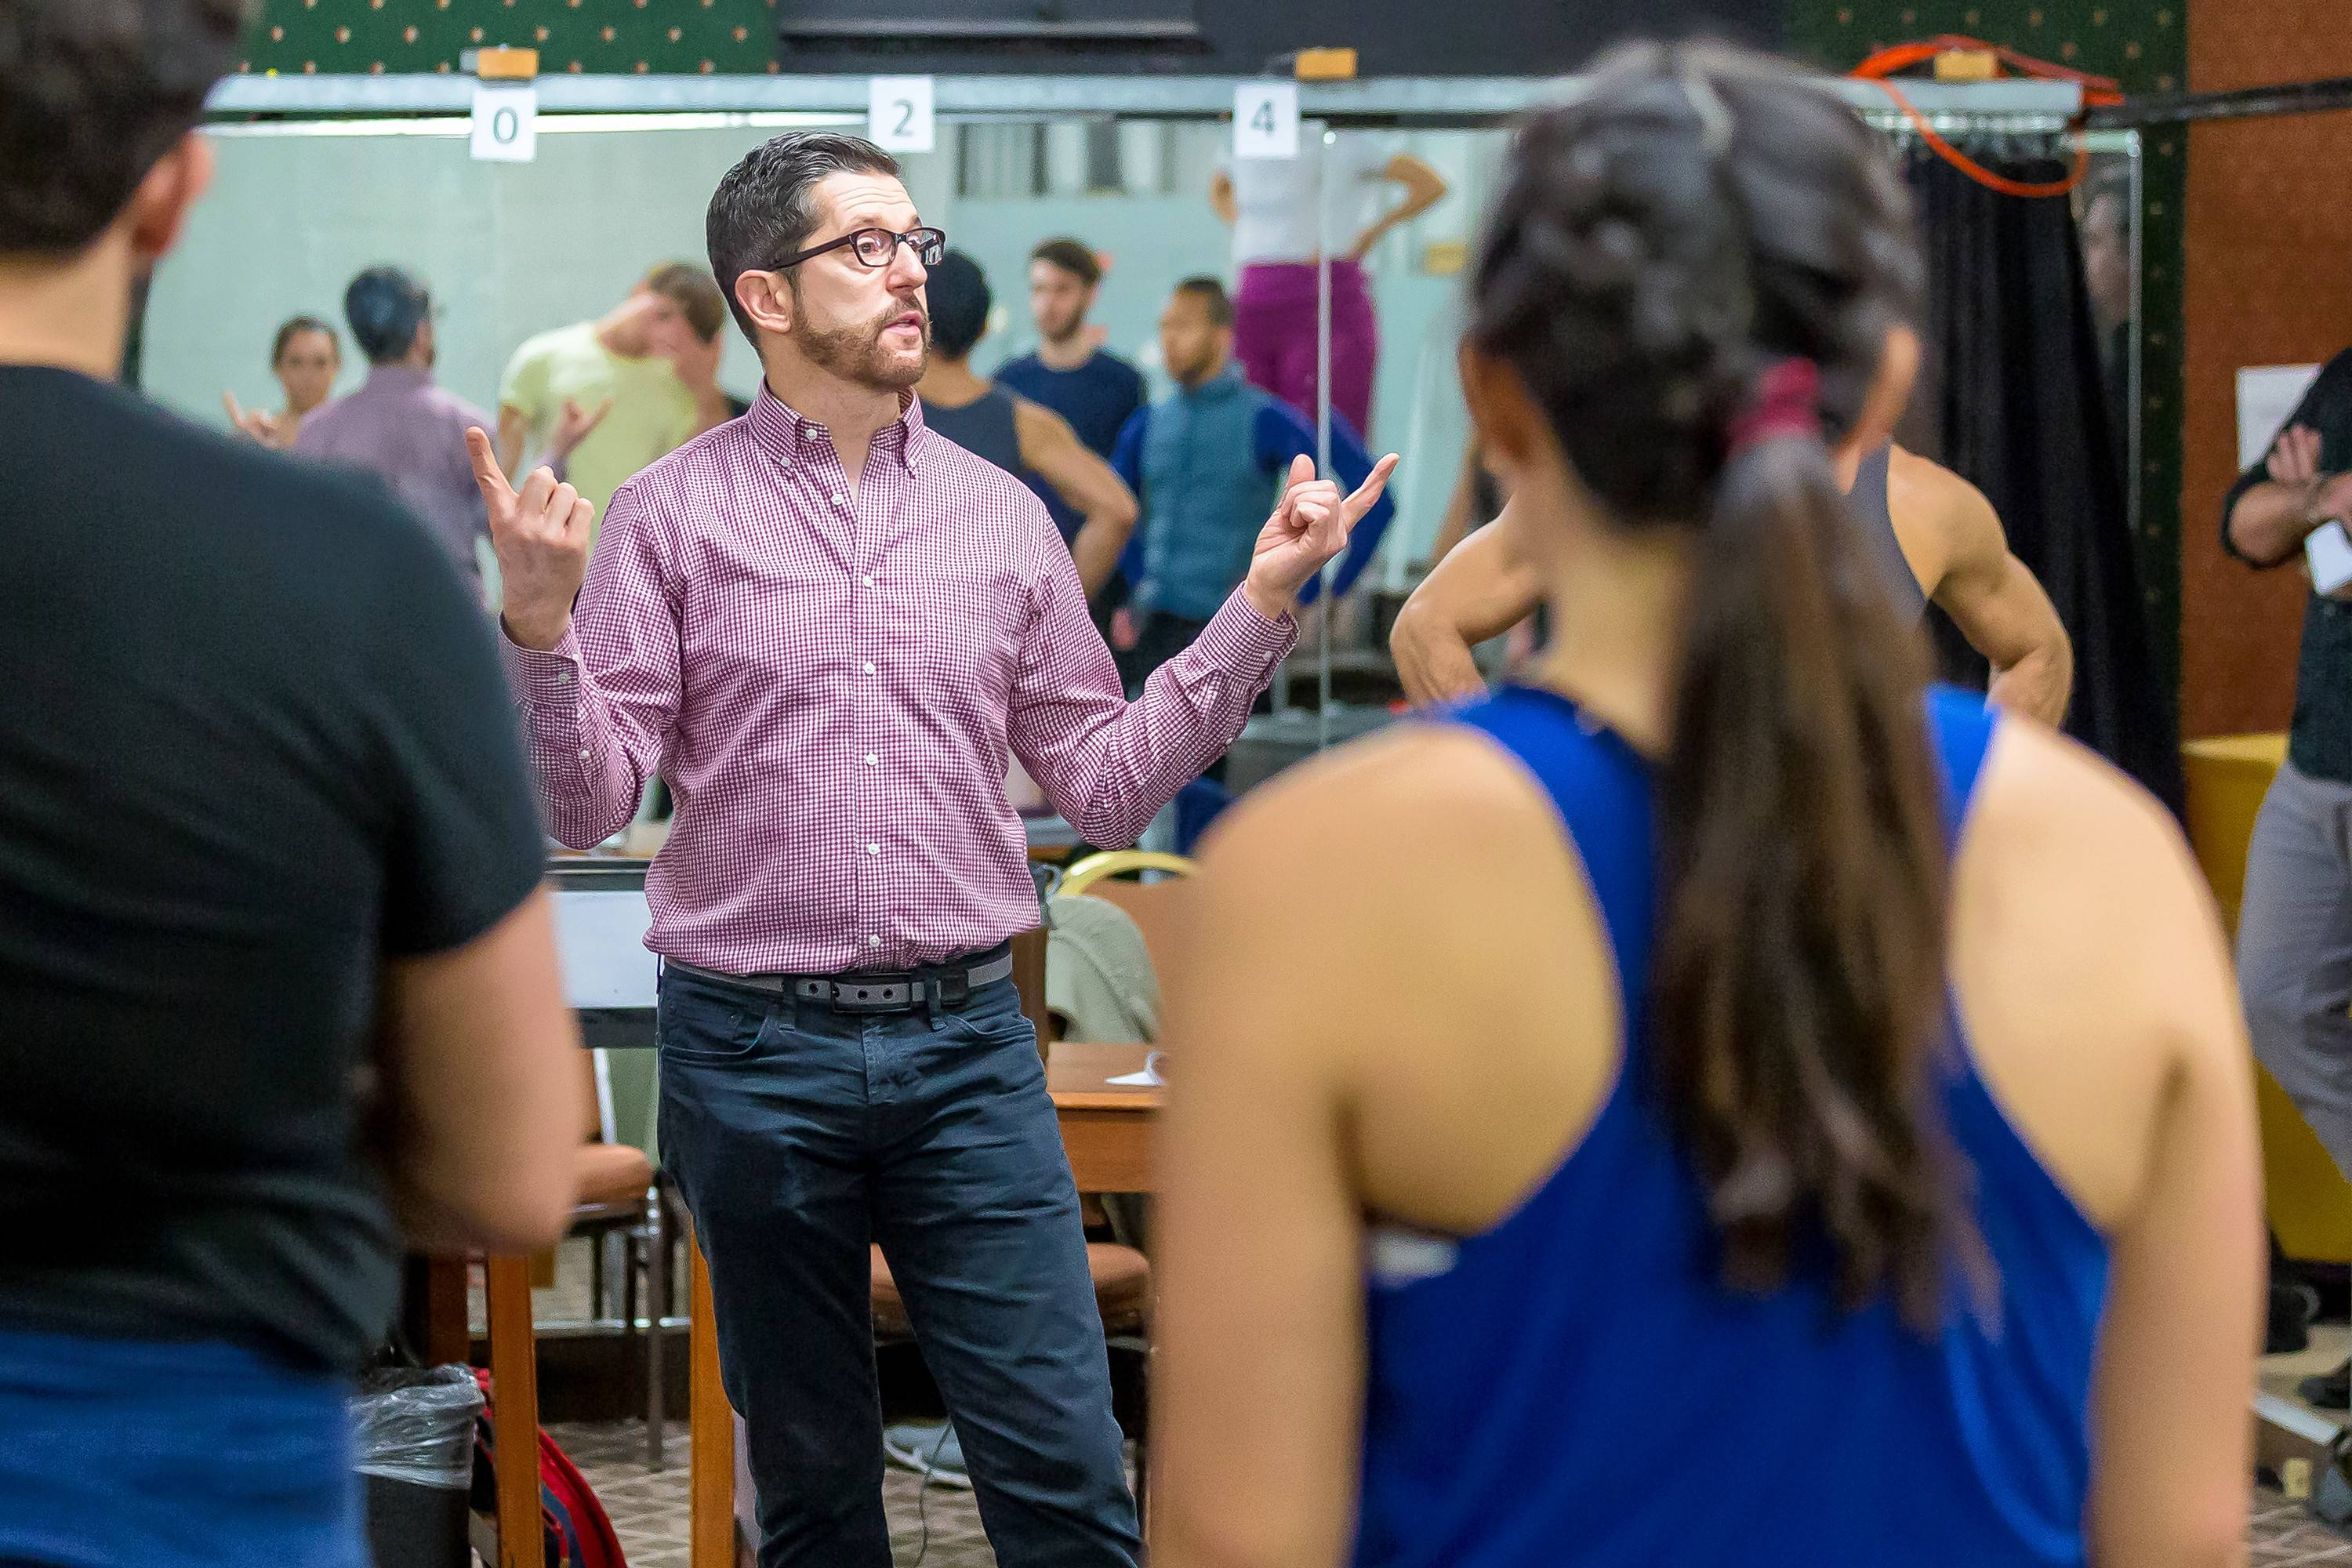 """Director Alan Souza rehearses for """"Disney's Beauty and the Beast"""" at Drury Lane Theatre in Oakbrook Terrace."""